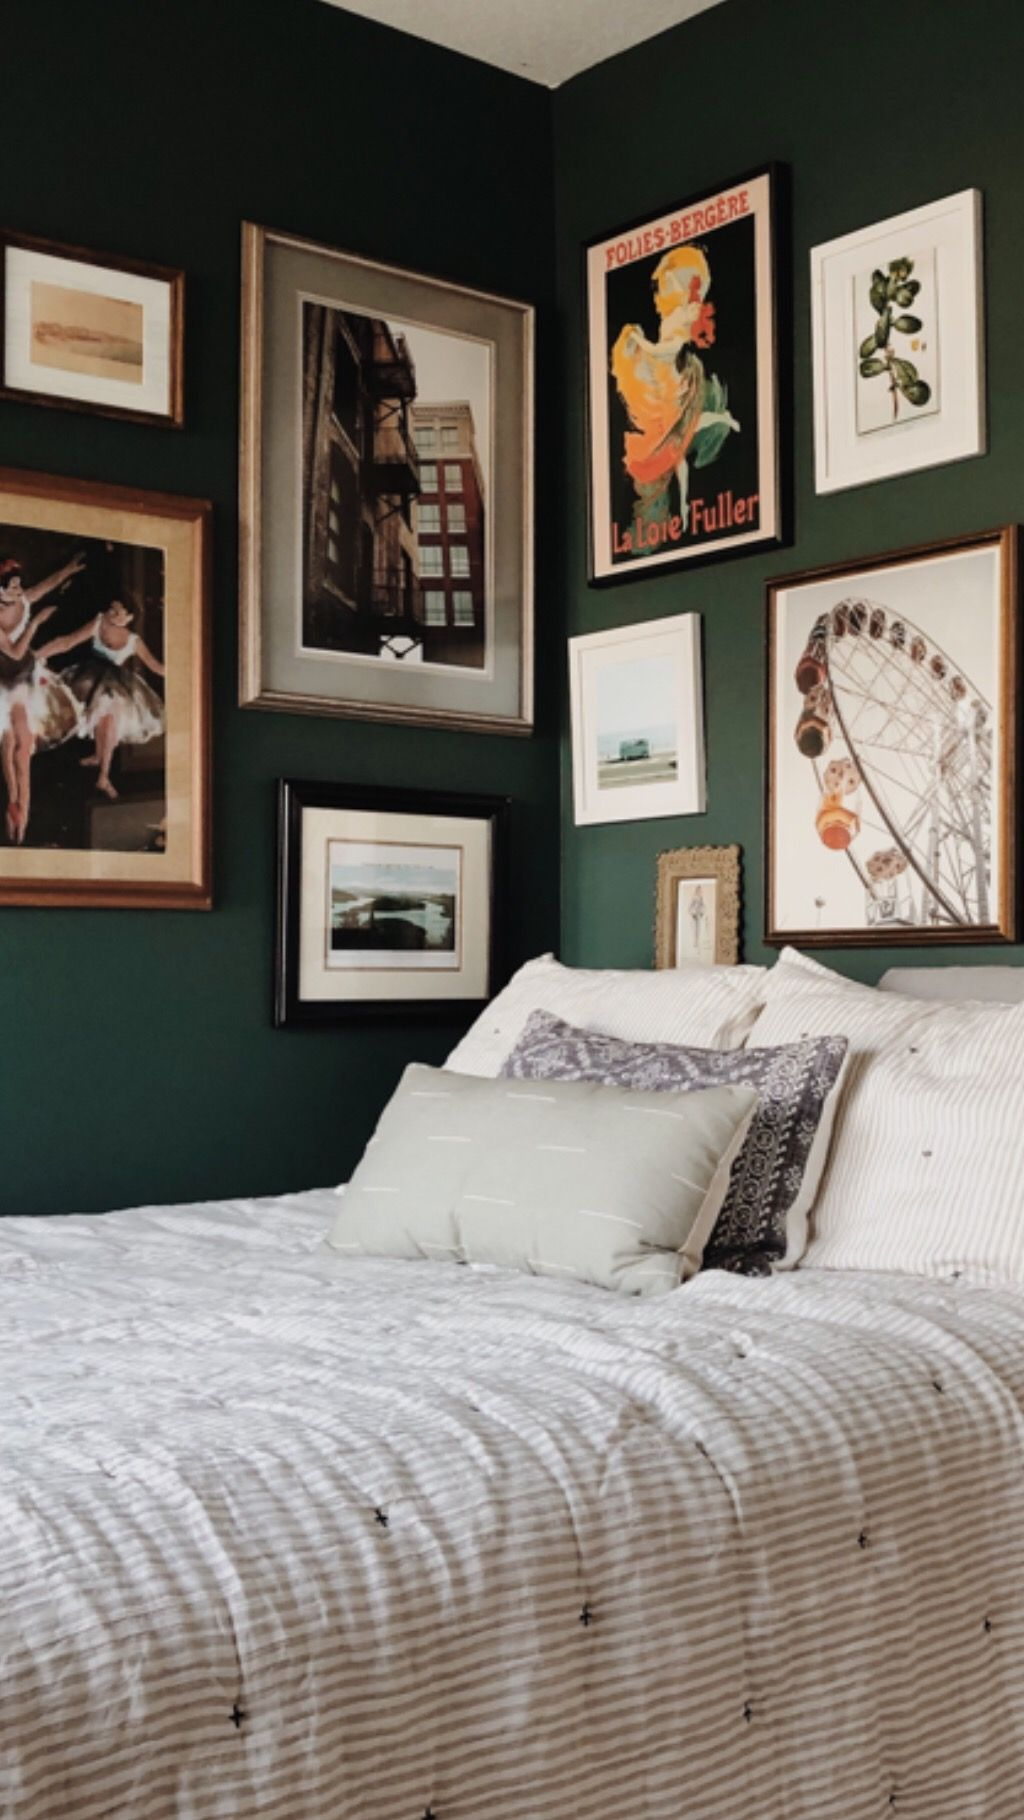 How to create an eclectic gallery wall gallery wall